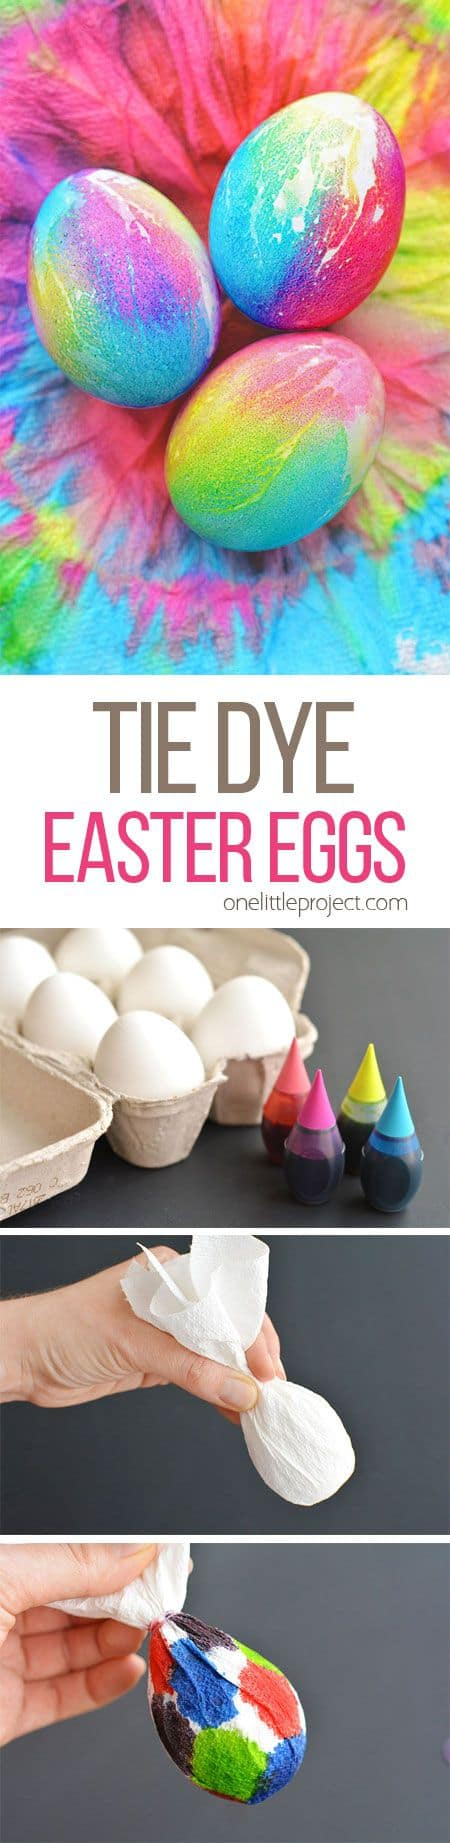 These Tie Dye Easter Eggs are SO FUN and they're so simple to make! The colors are bright and beautiful and the eggs are completely safe to eat!